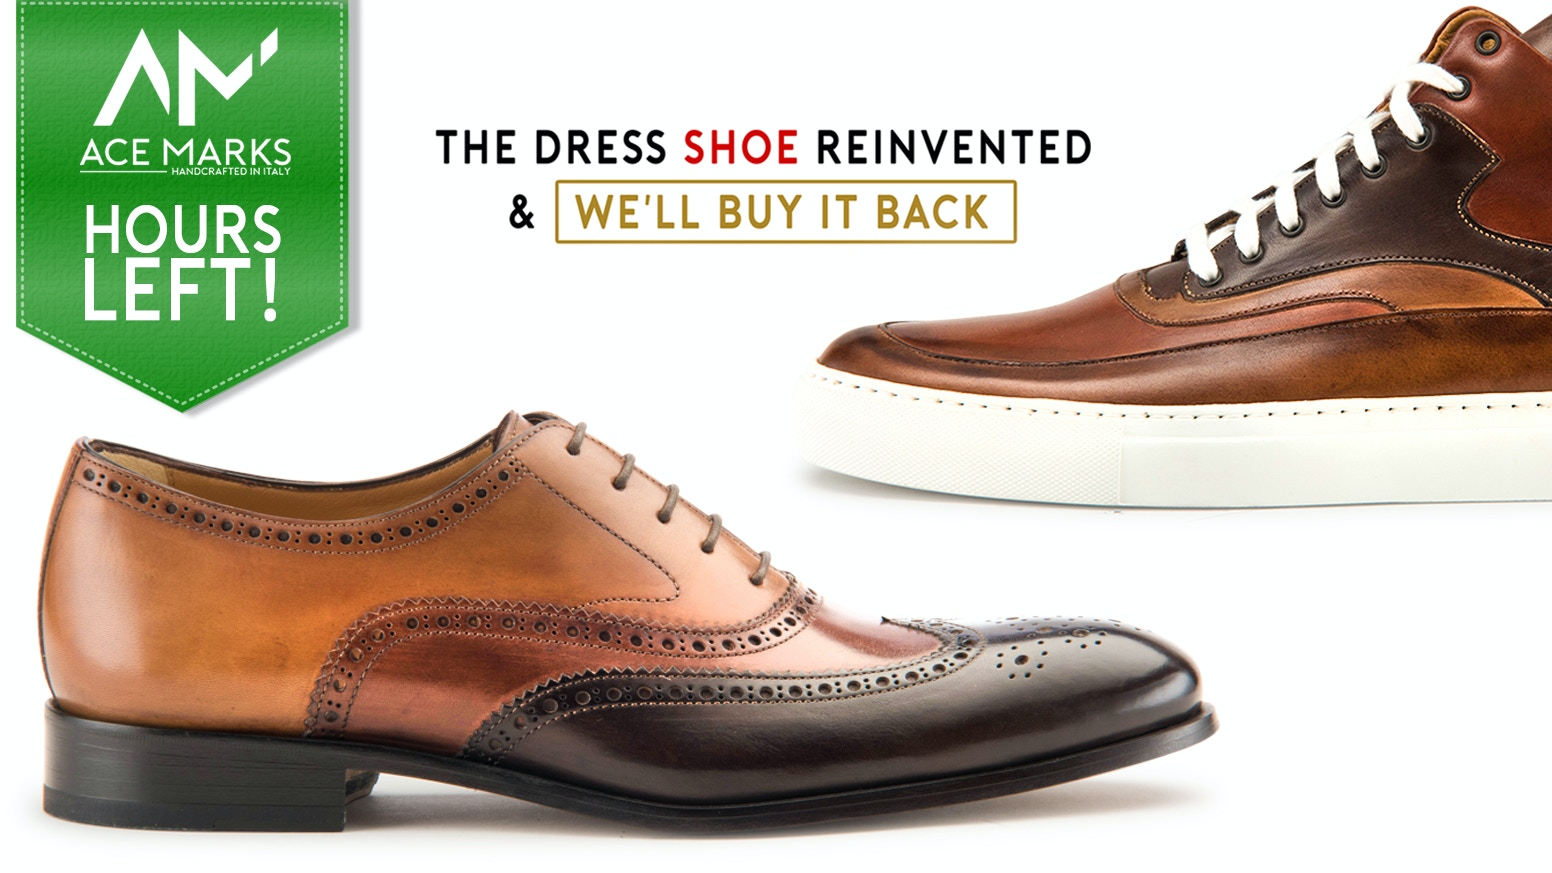 51f19eece921c Handcrafted Dress Shoes & Sneakers Reinvented For Modern Men. The first  bold, comfortable, & affordable handcrafted Italian leather shoes & sneakers  with a